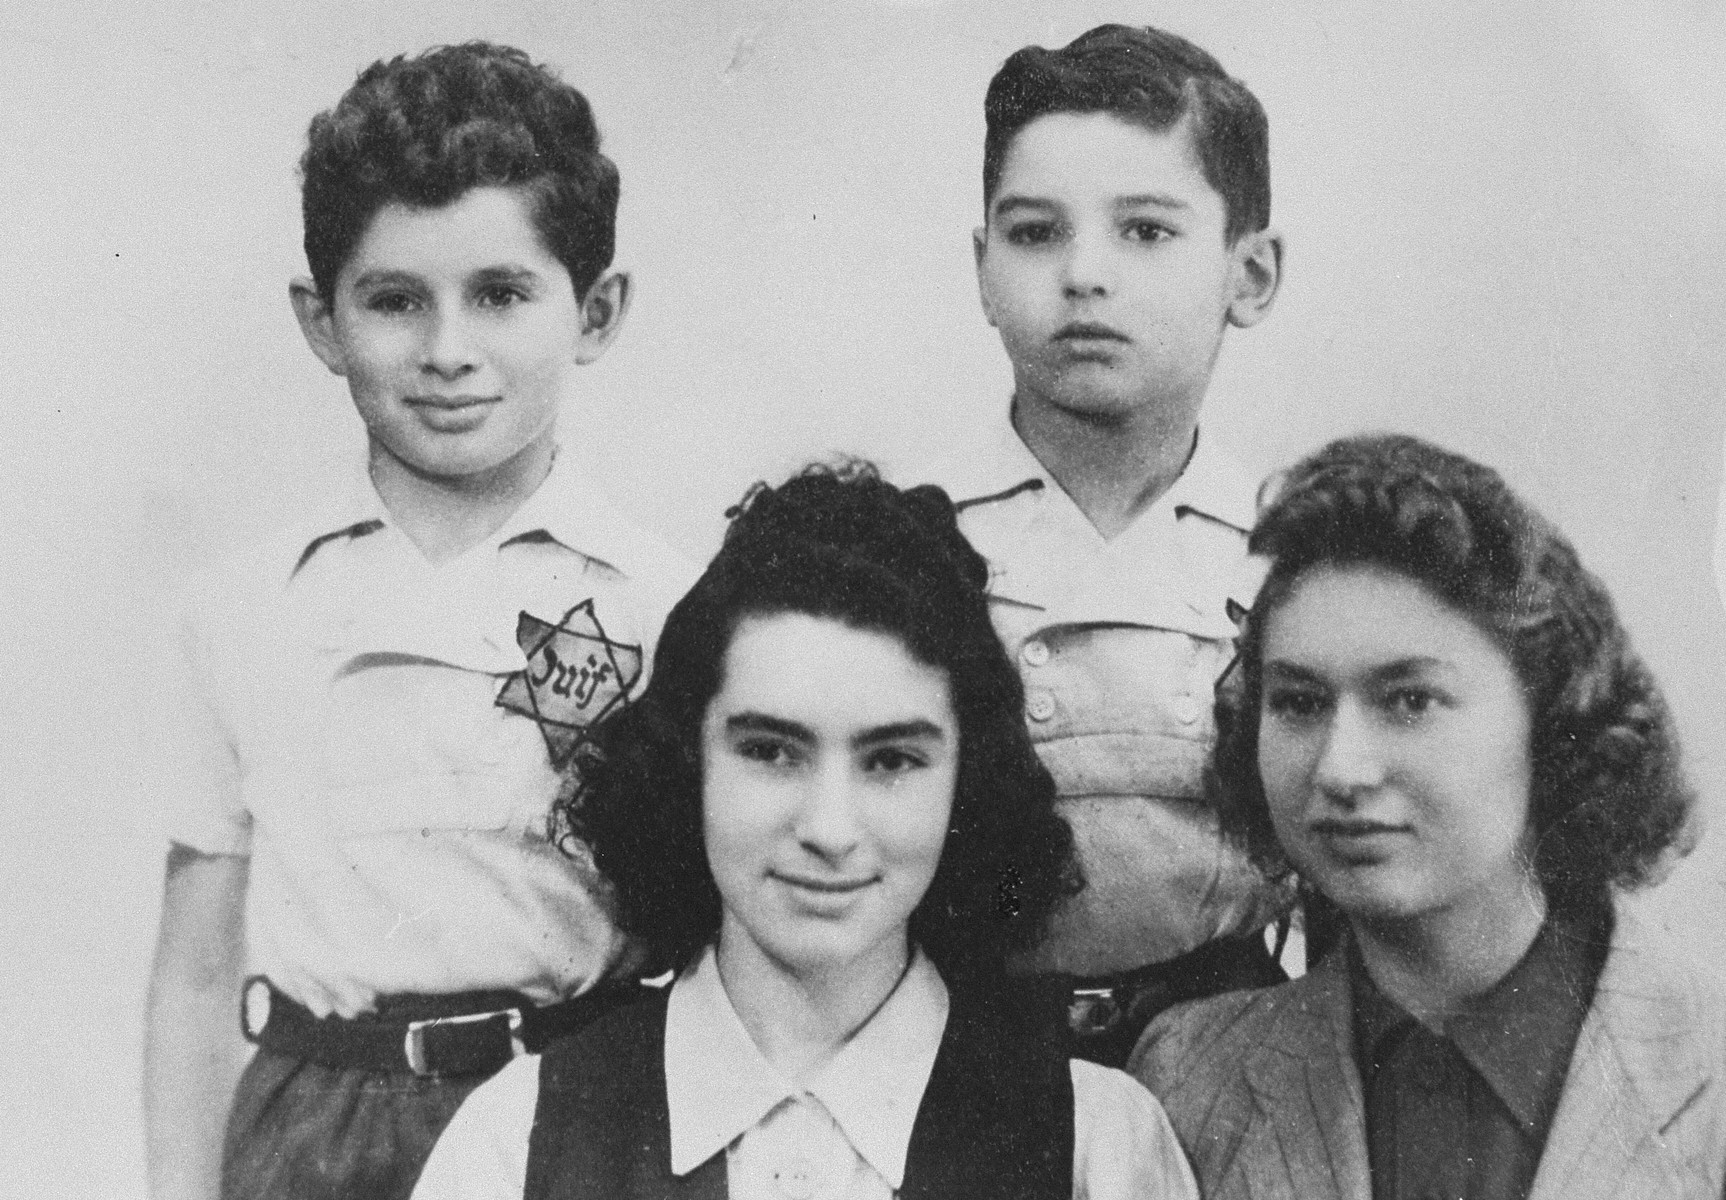 The Margules children wearing Jewish badges.  Originally from Warsaw, the Margules family settled in Paris in the 1930s.  Three of the children were deported and killed in 1942.  Only one daughter (pictured at the bottom right) survived the war.